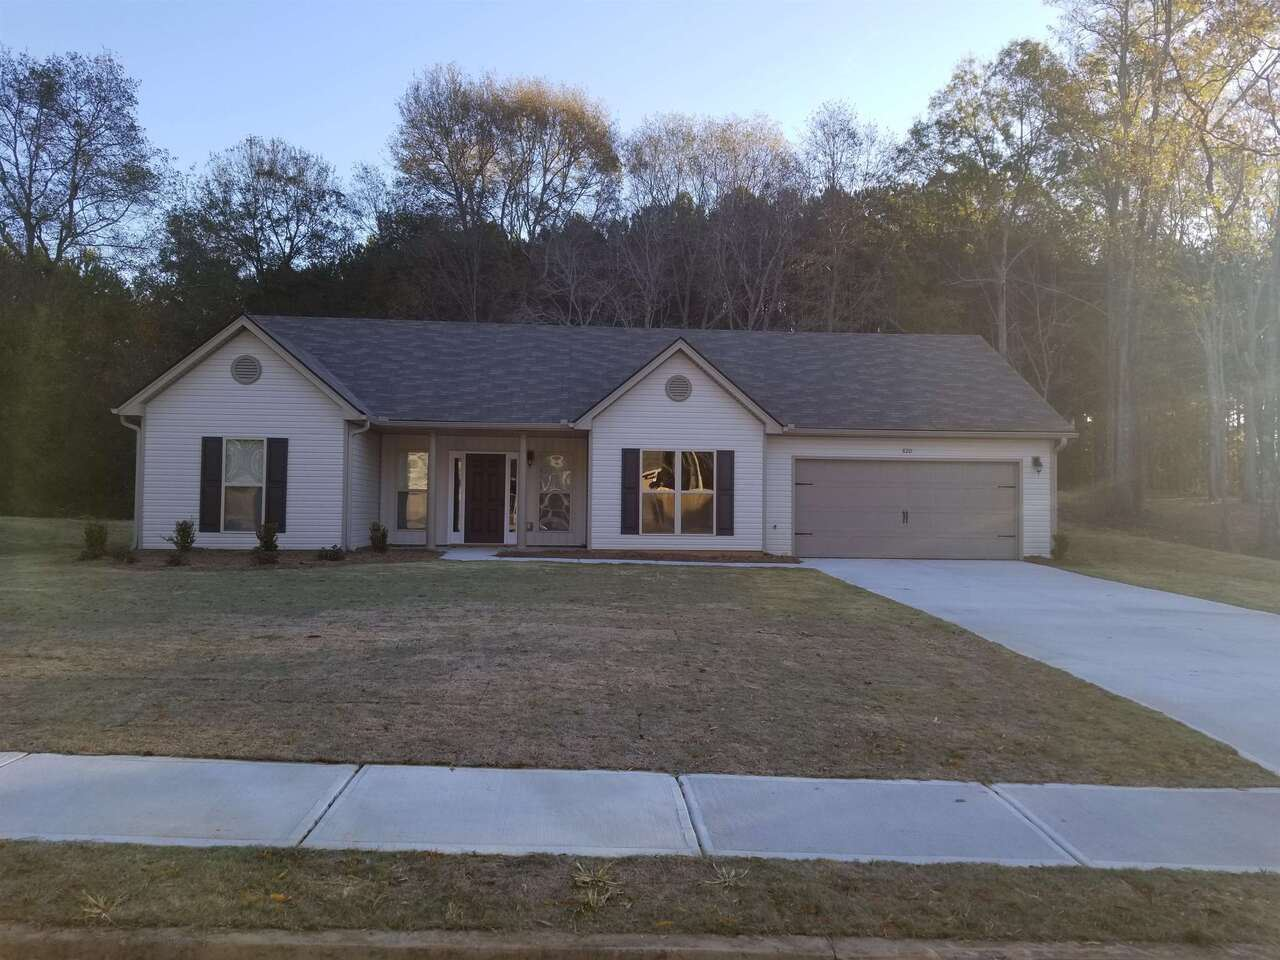 152 Armstrong Drive #93, Mansfield, GA 30055 - MLS#: 9051457